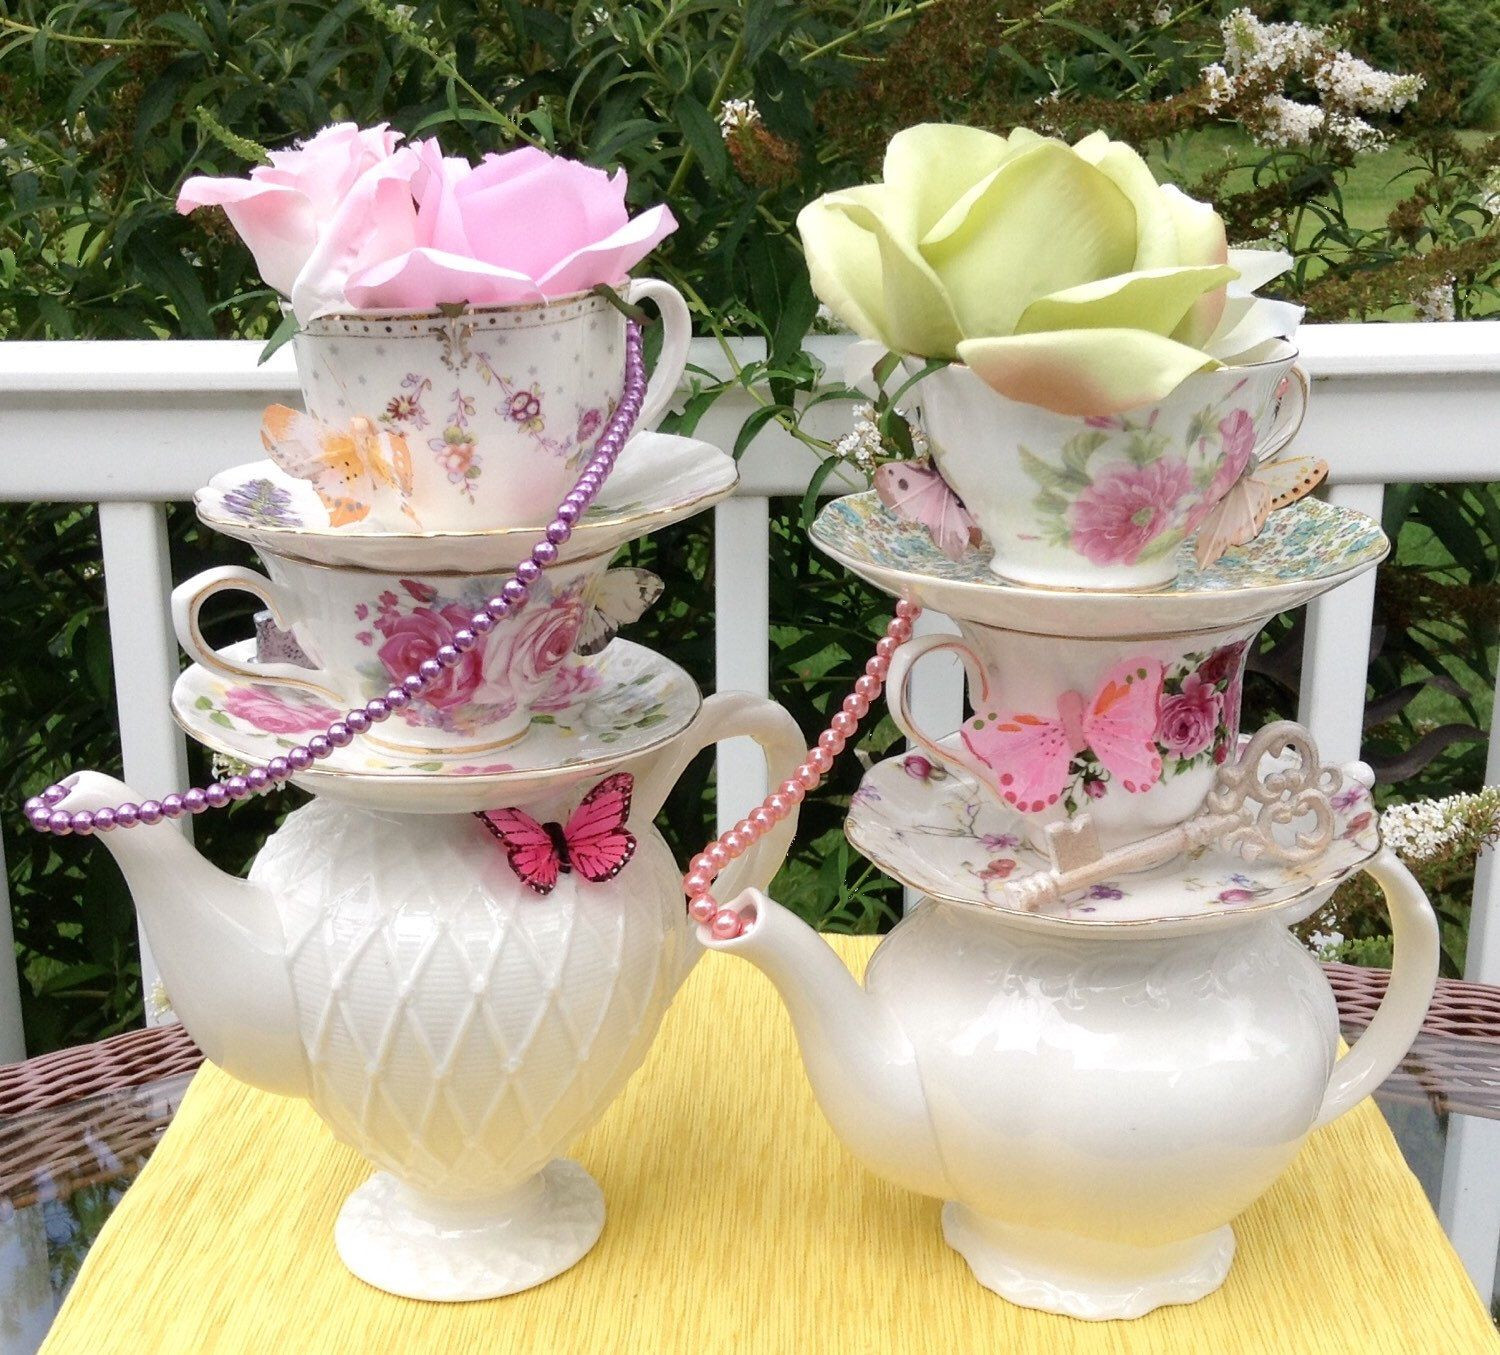 teapot flower vase of pair of two teapot teacup centerpieces pearls key butterflies pertaining to pair of two teapot teacup centerpieces pearls key butterflies rose